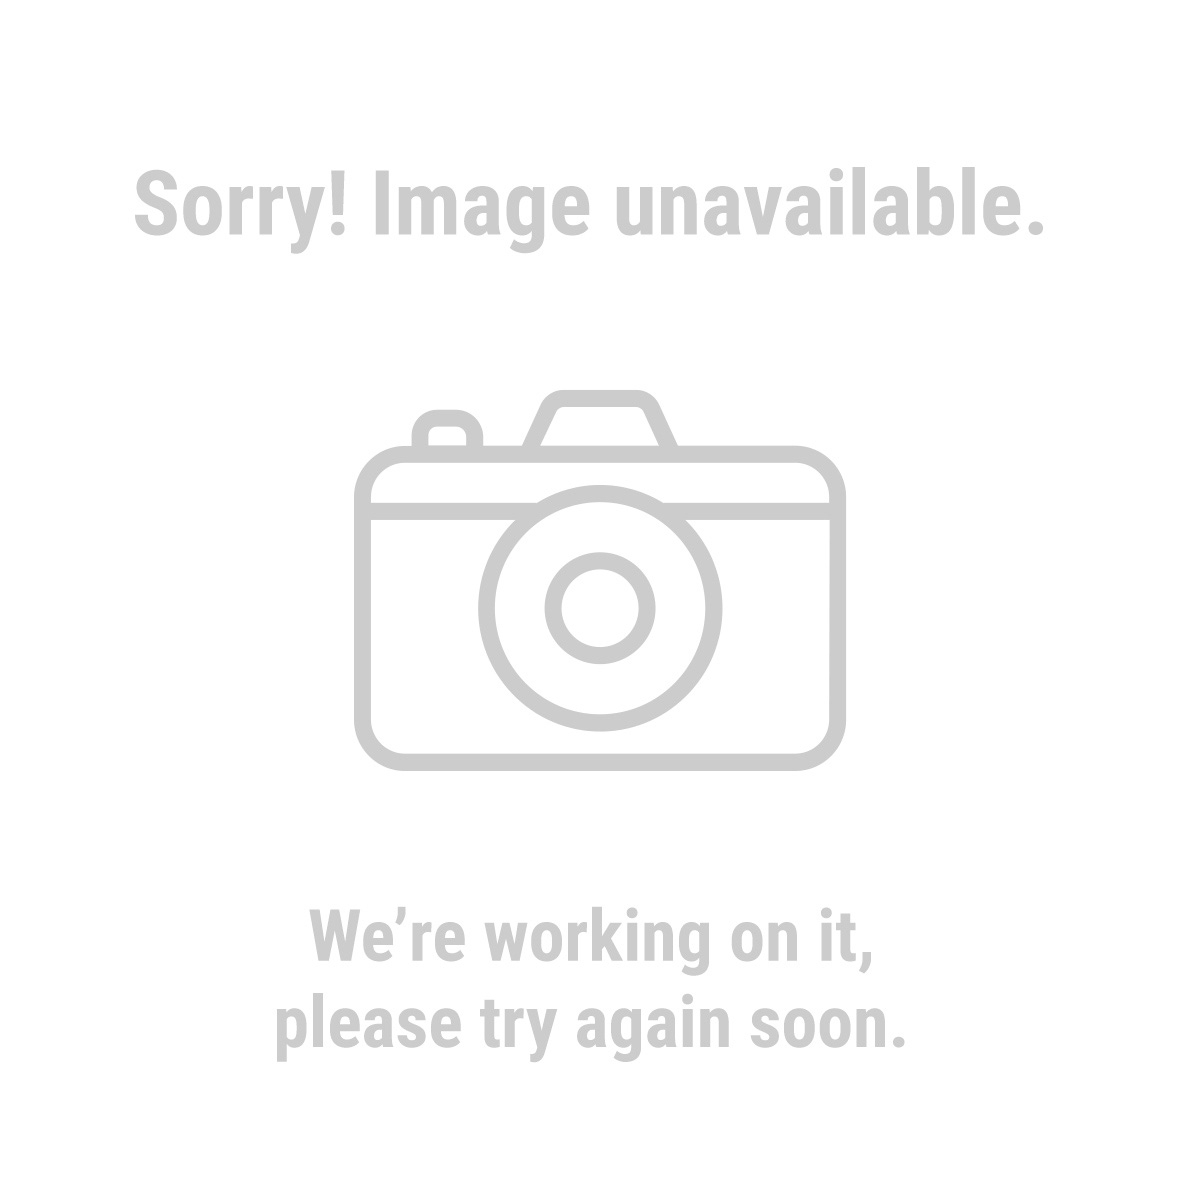 4855 11 Piece Wood Carving Set